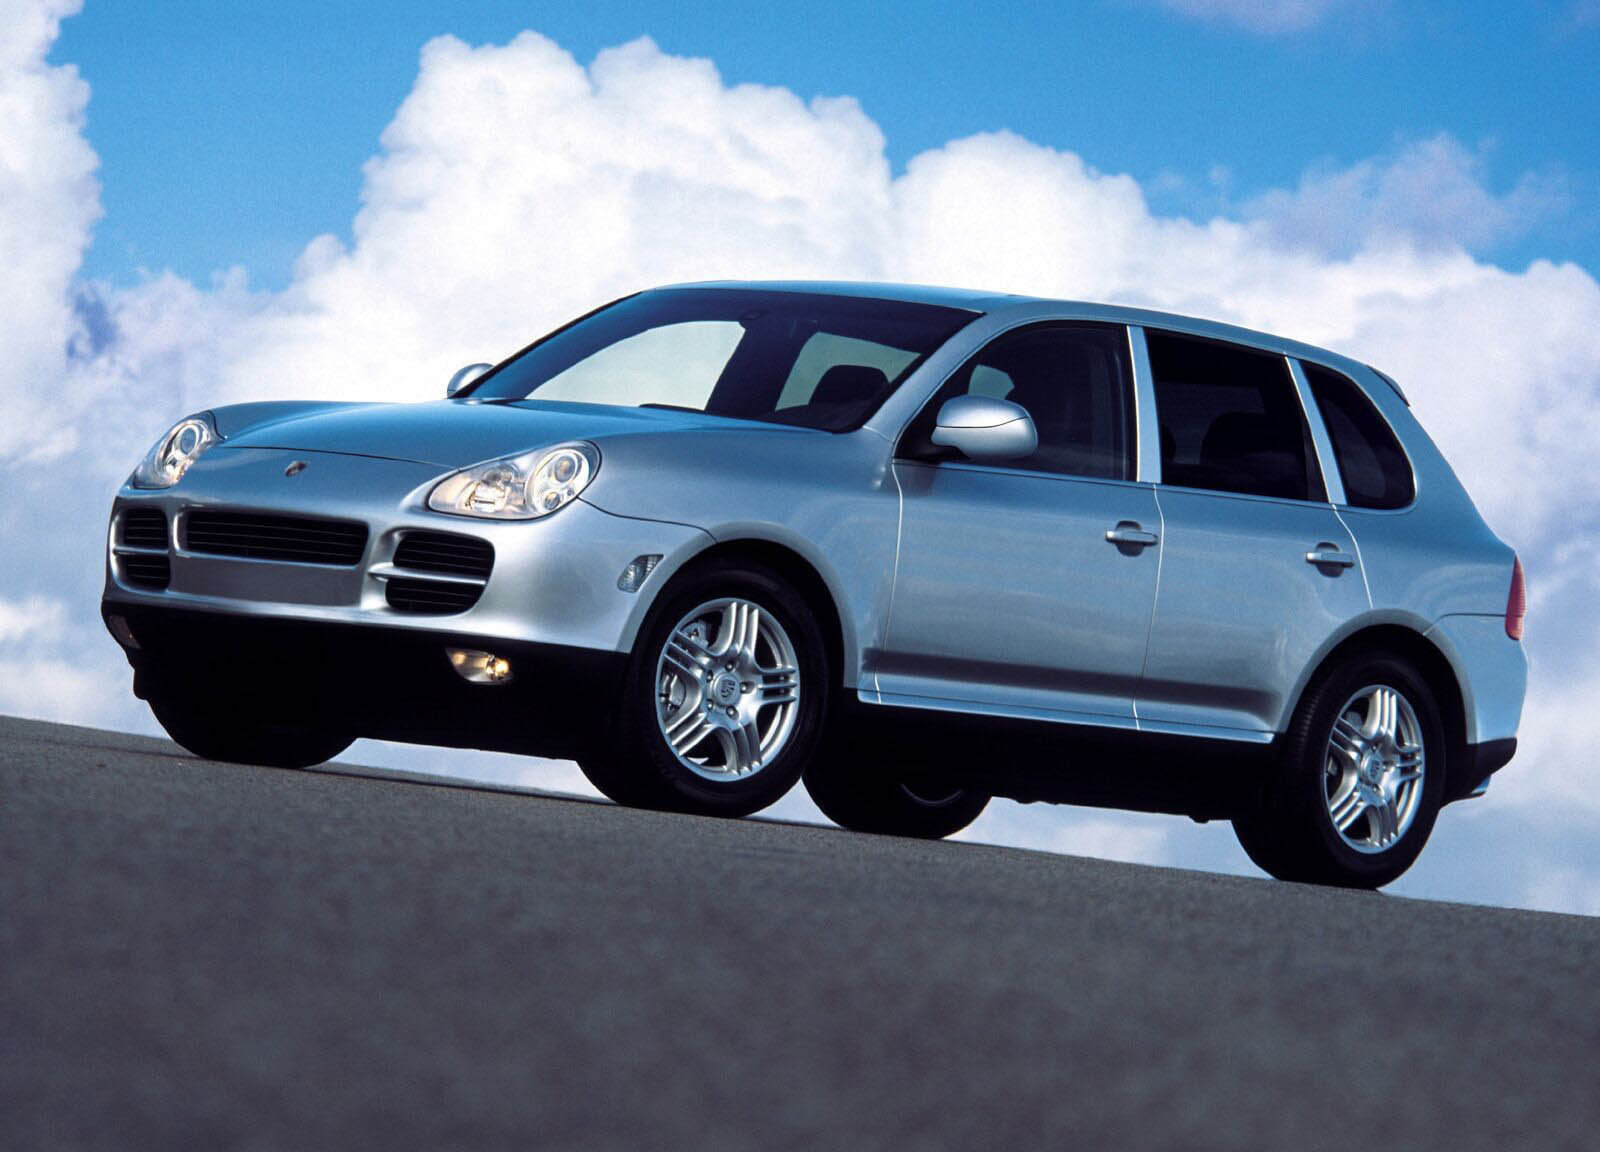 2005 porsche cayenne turbo picture 18920 car review top speed. Black Bedroom Furniture Sets. Home Design Ideas